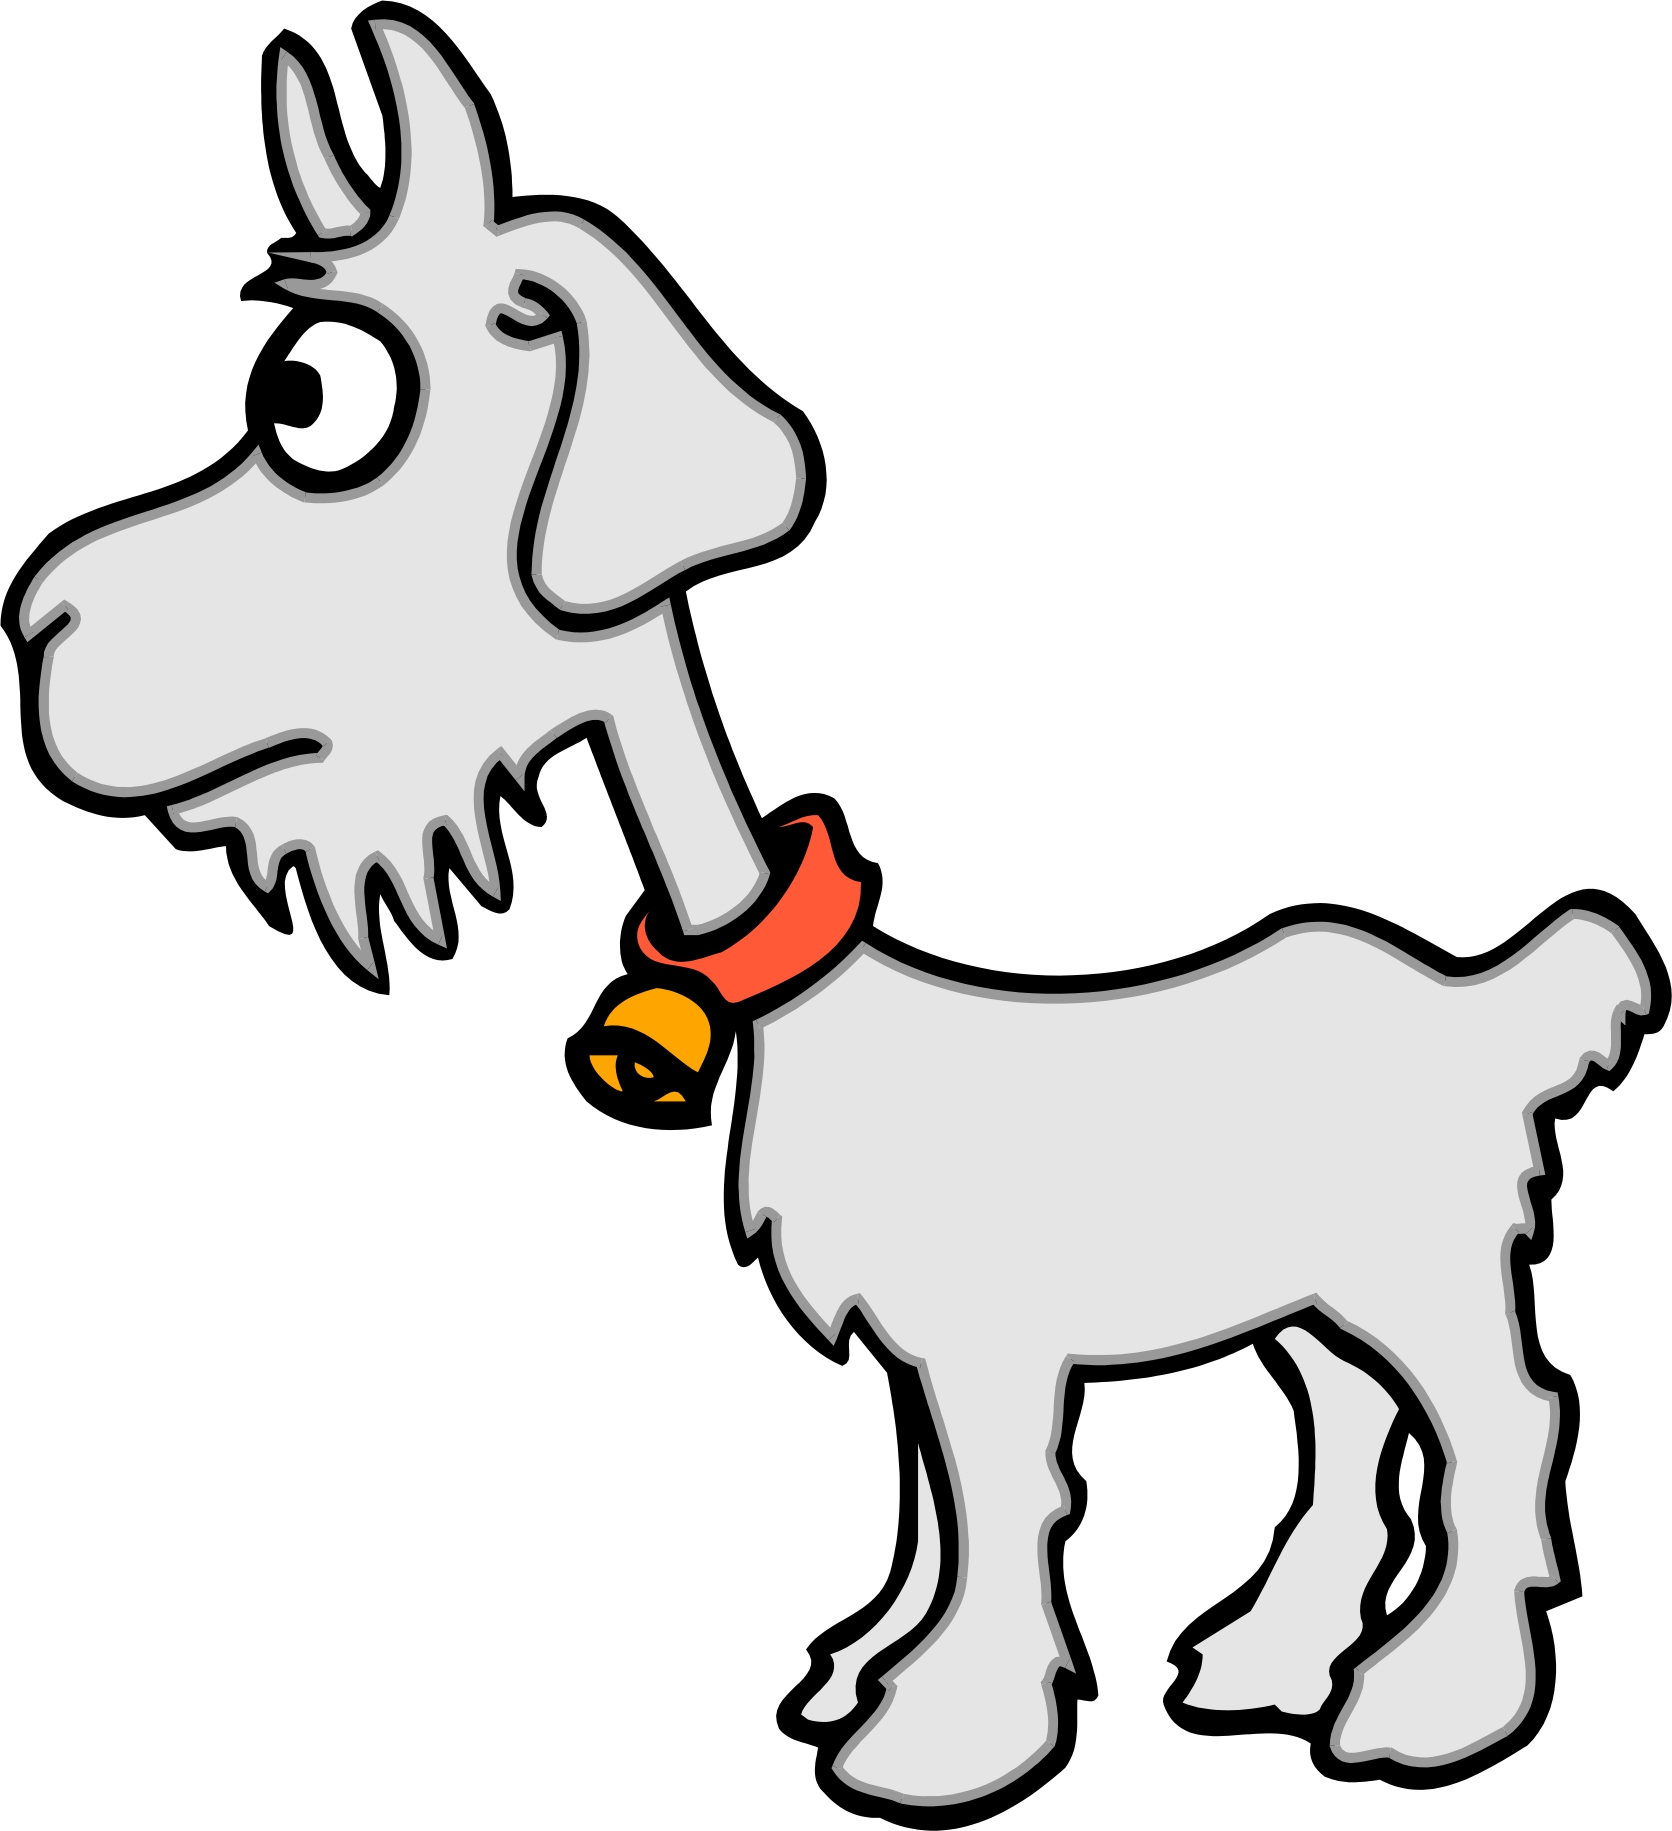 goat picture cartoon cartoon goat drawing at getdrawings free download cartoon goat picture